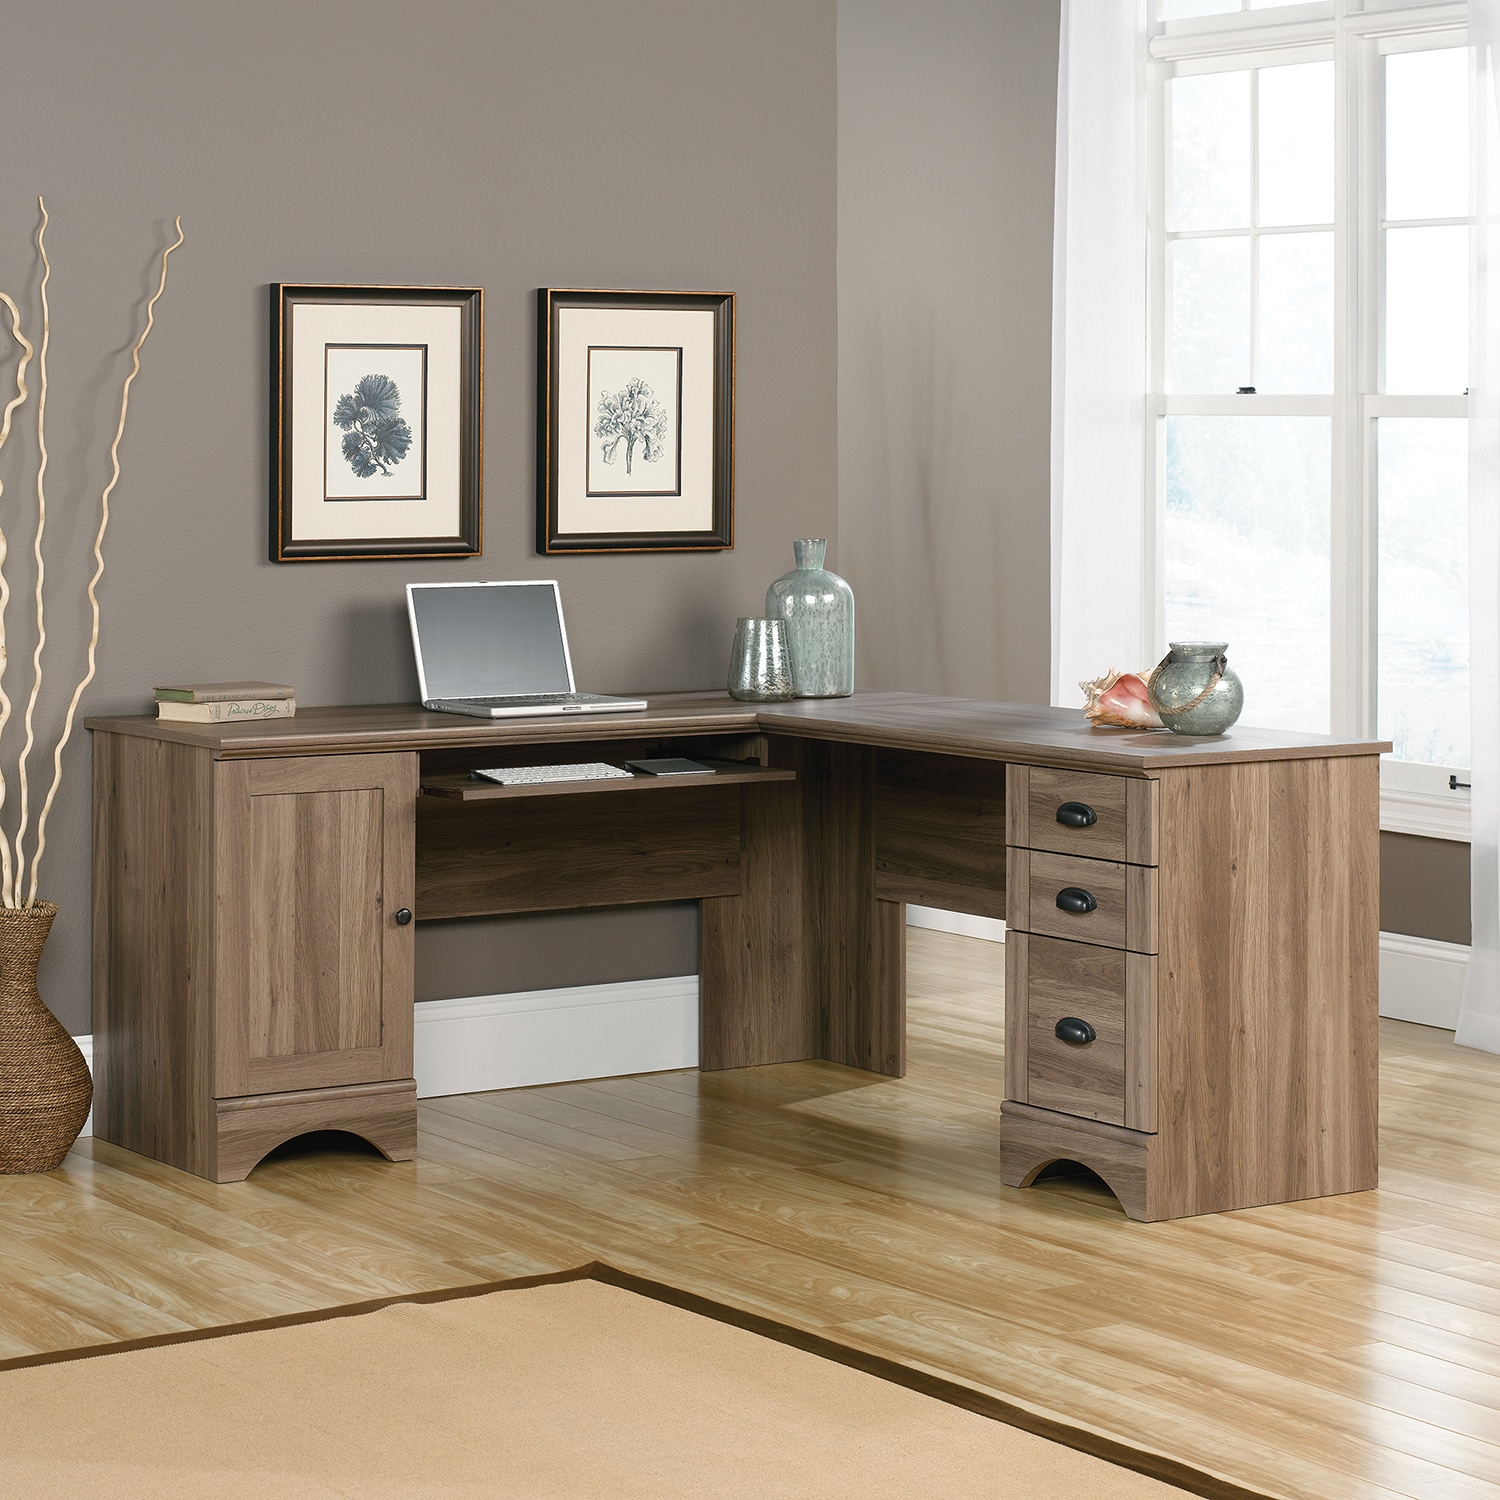 Home Desk Design Ideas: Harbor View Corner Desk – Salt Oak